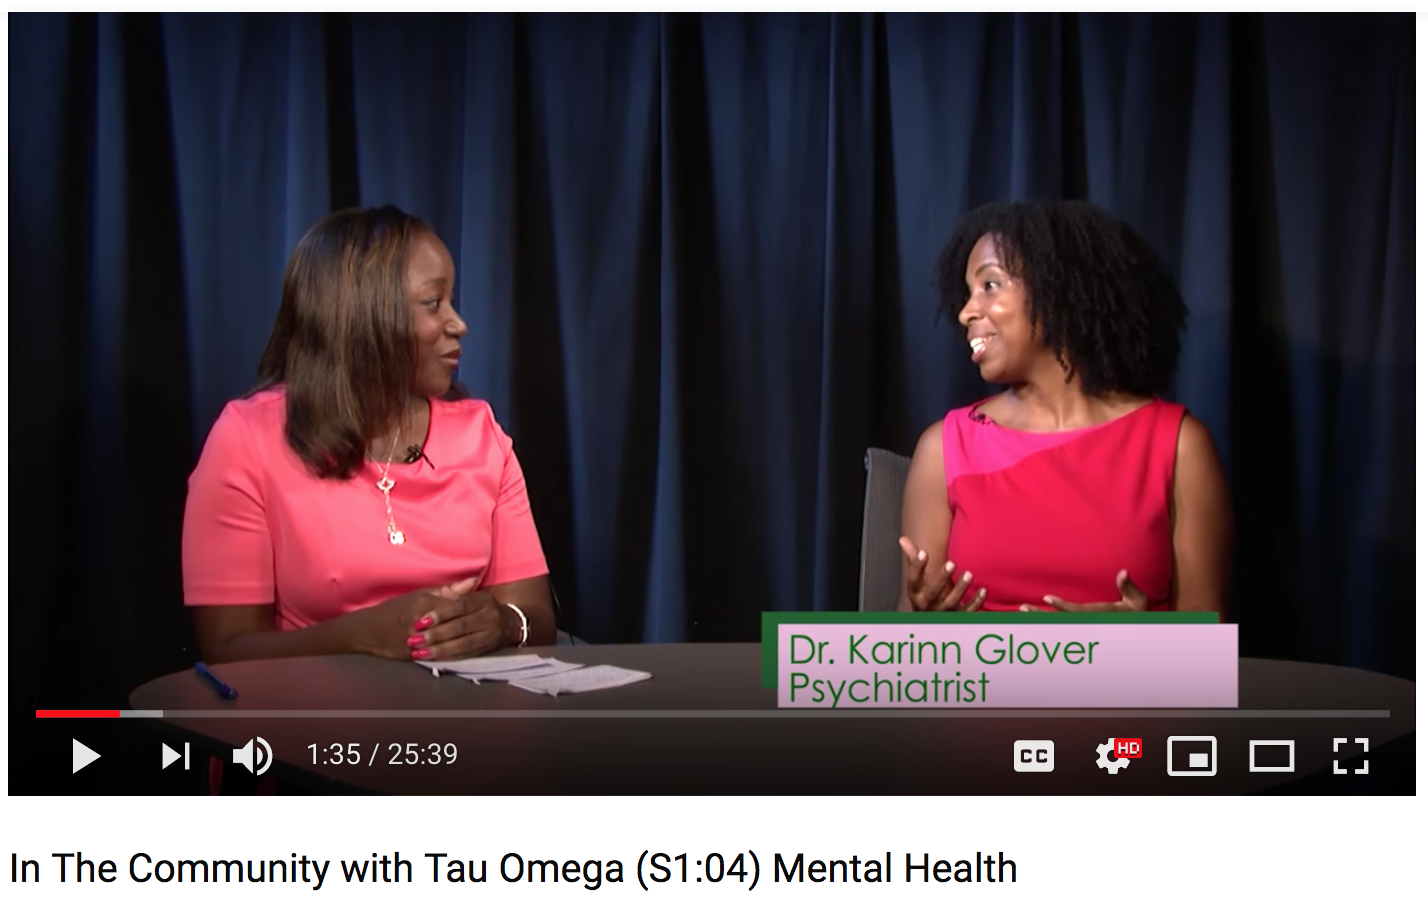 In the Community with Tau Omega Feature with Dr. Karinn